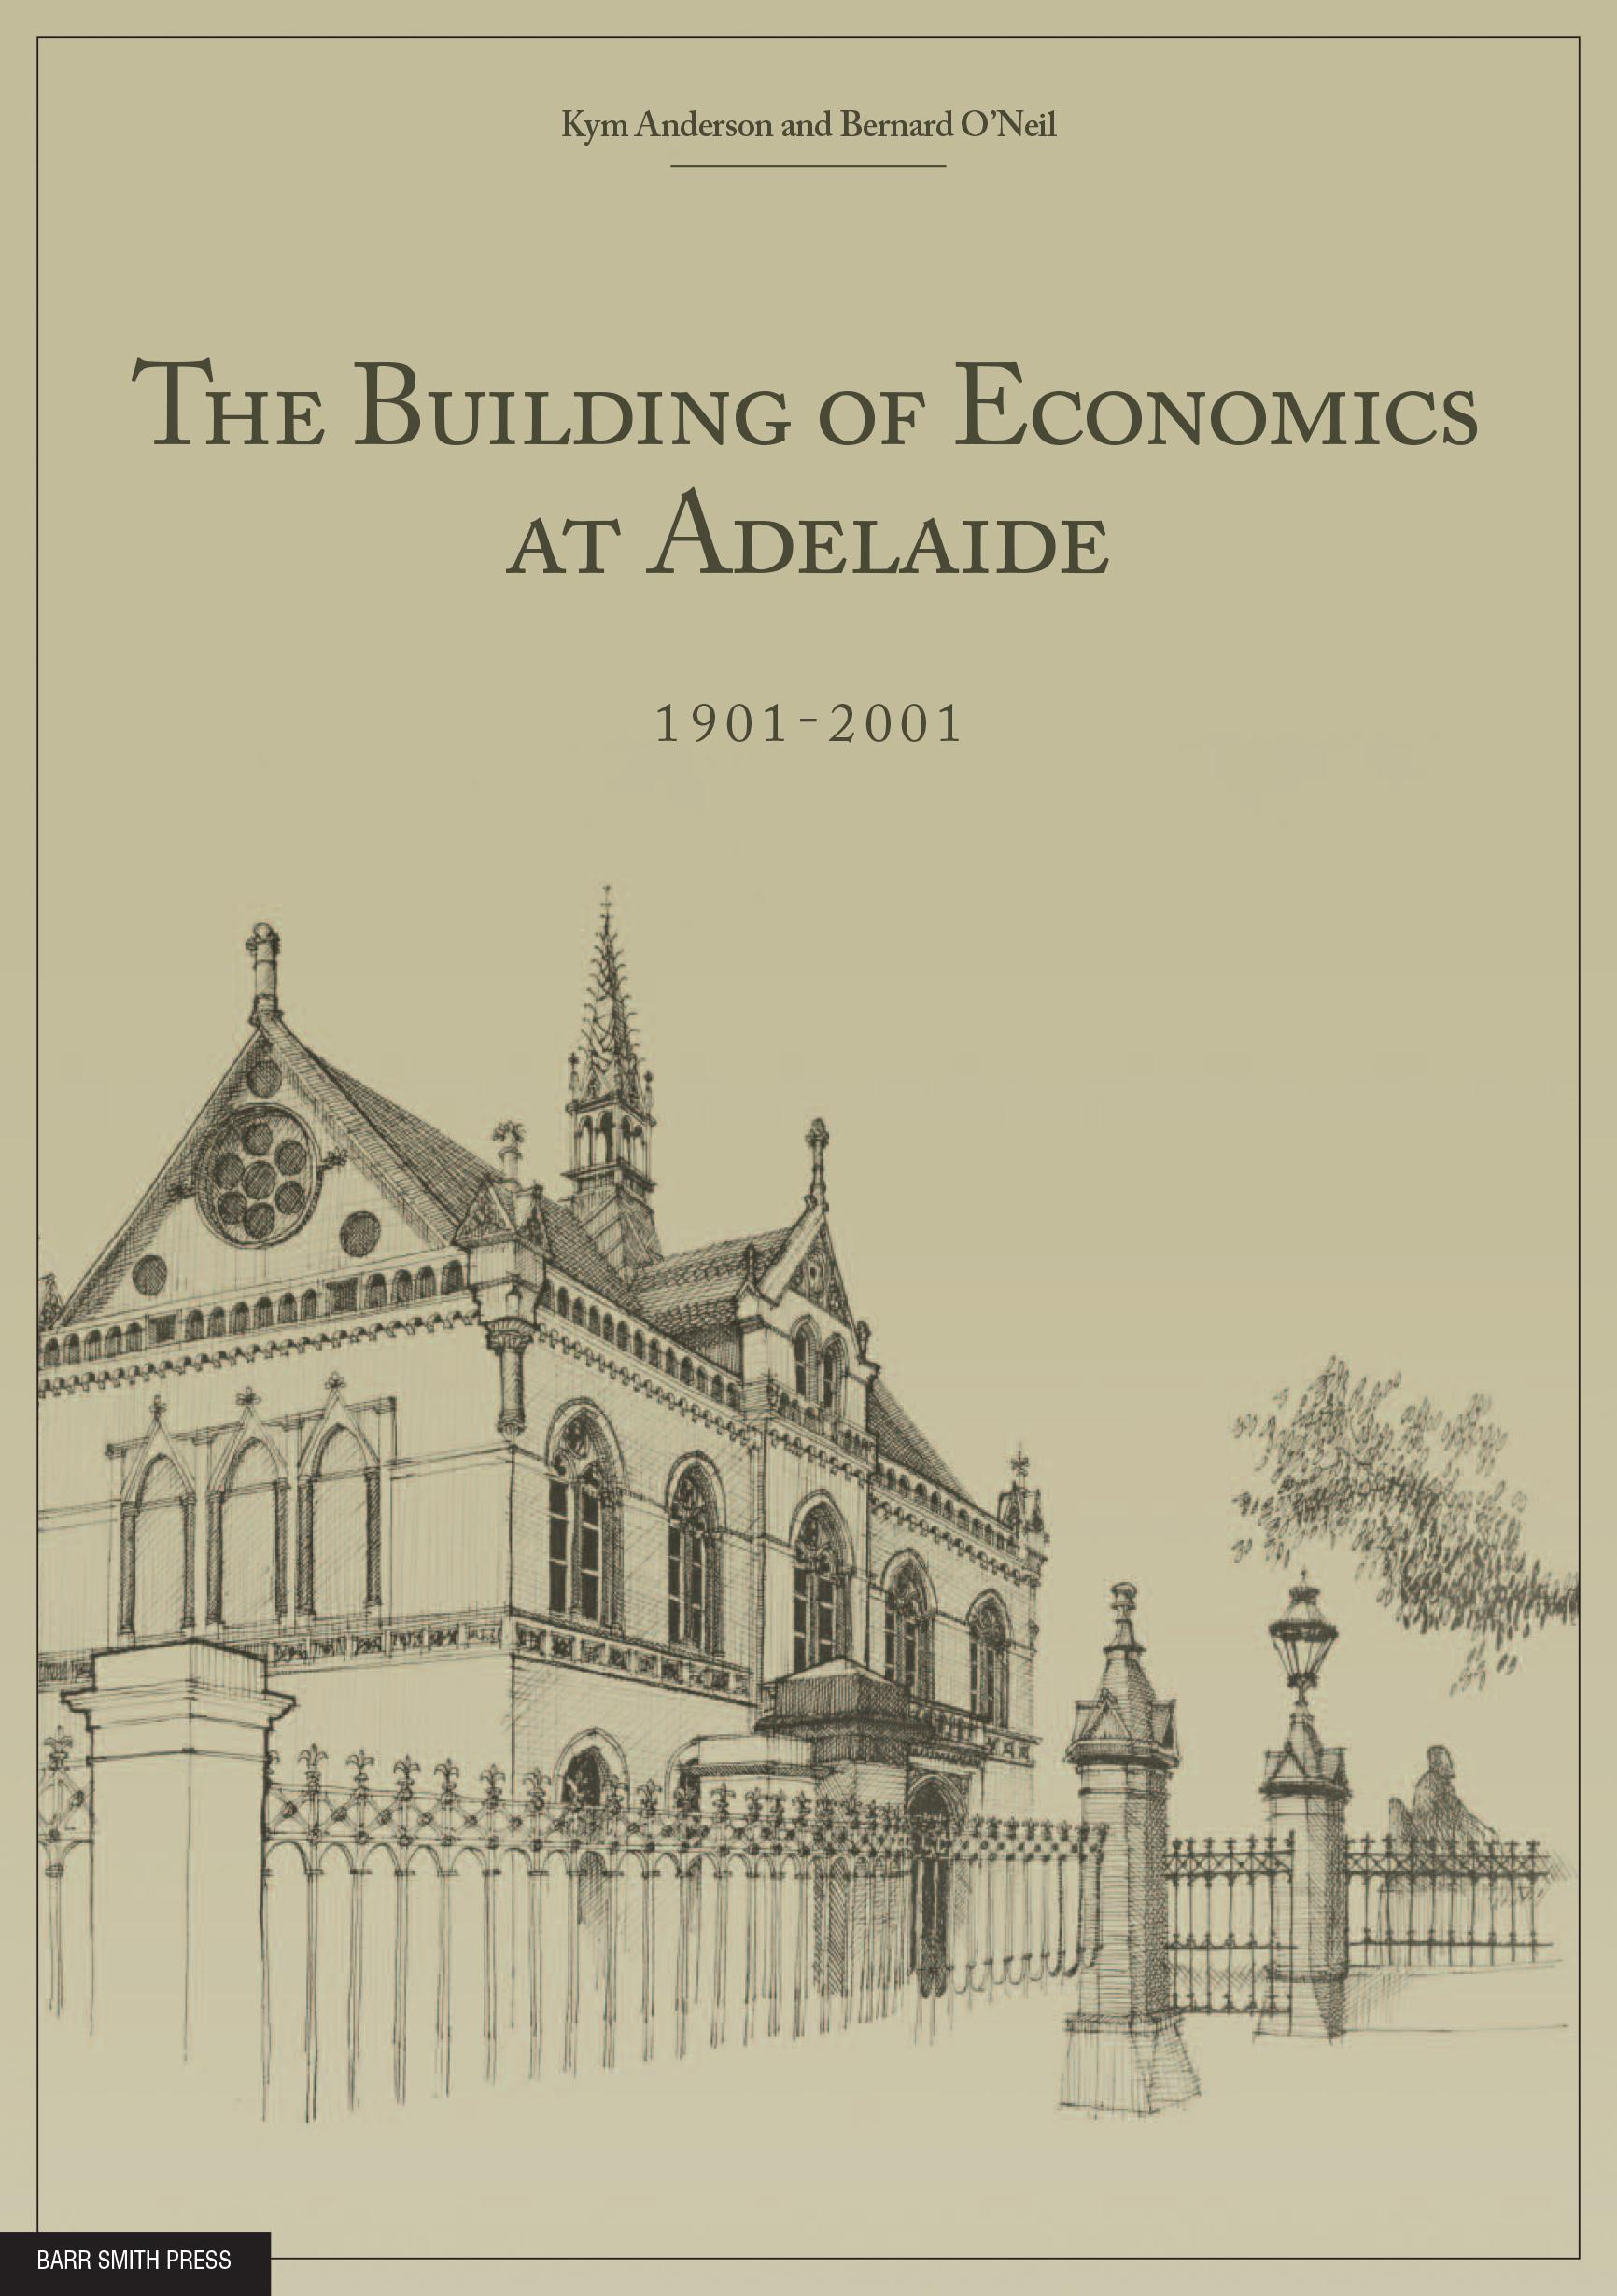 The Building of Economics at Adelaide cover